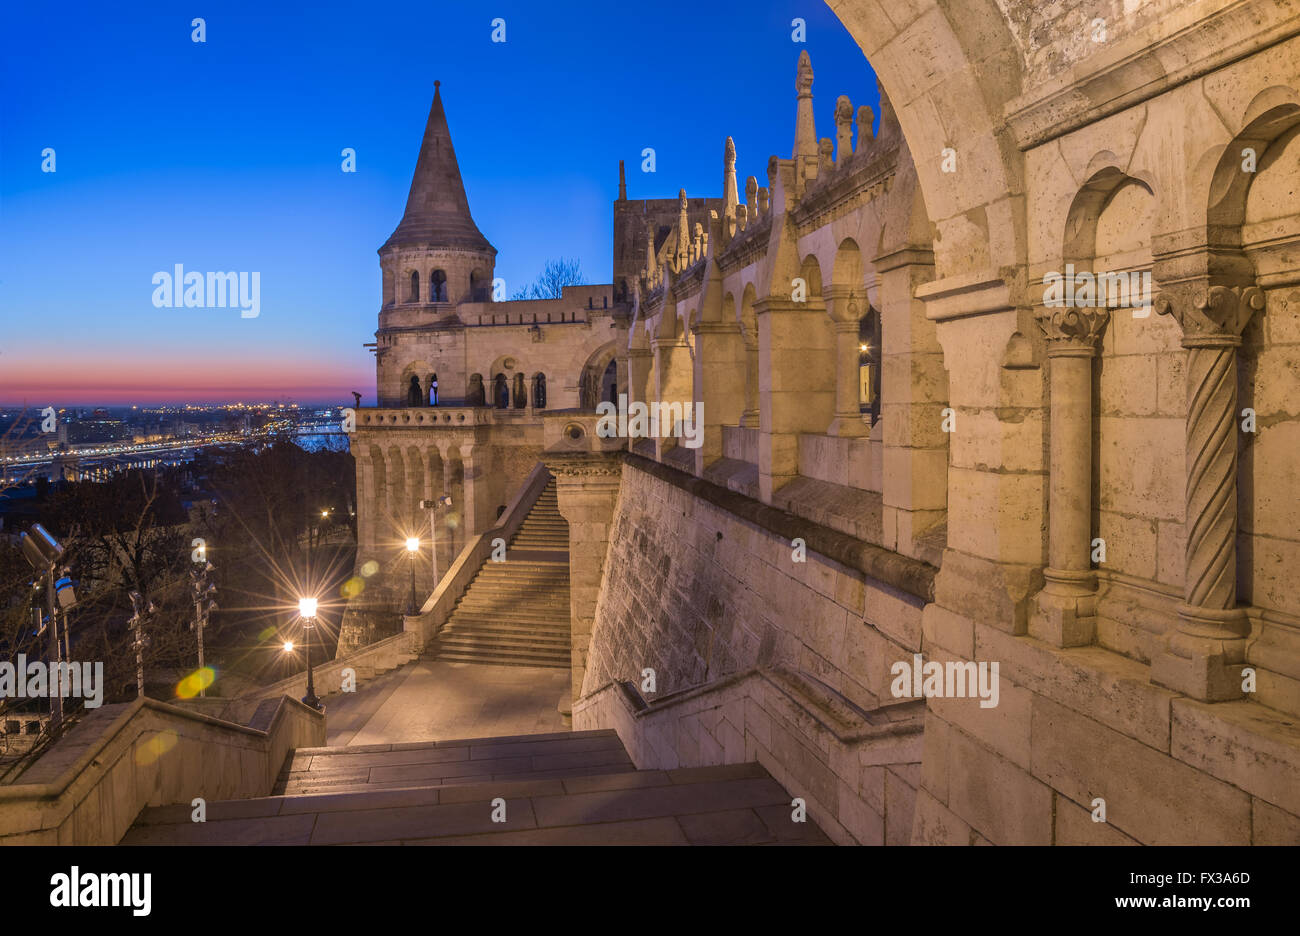 North Gate of Fisherman's Bastion in Budapest, Hungary Illuminated at Dawn Stock Photo